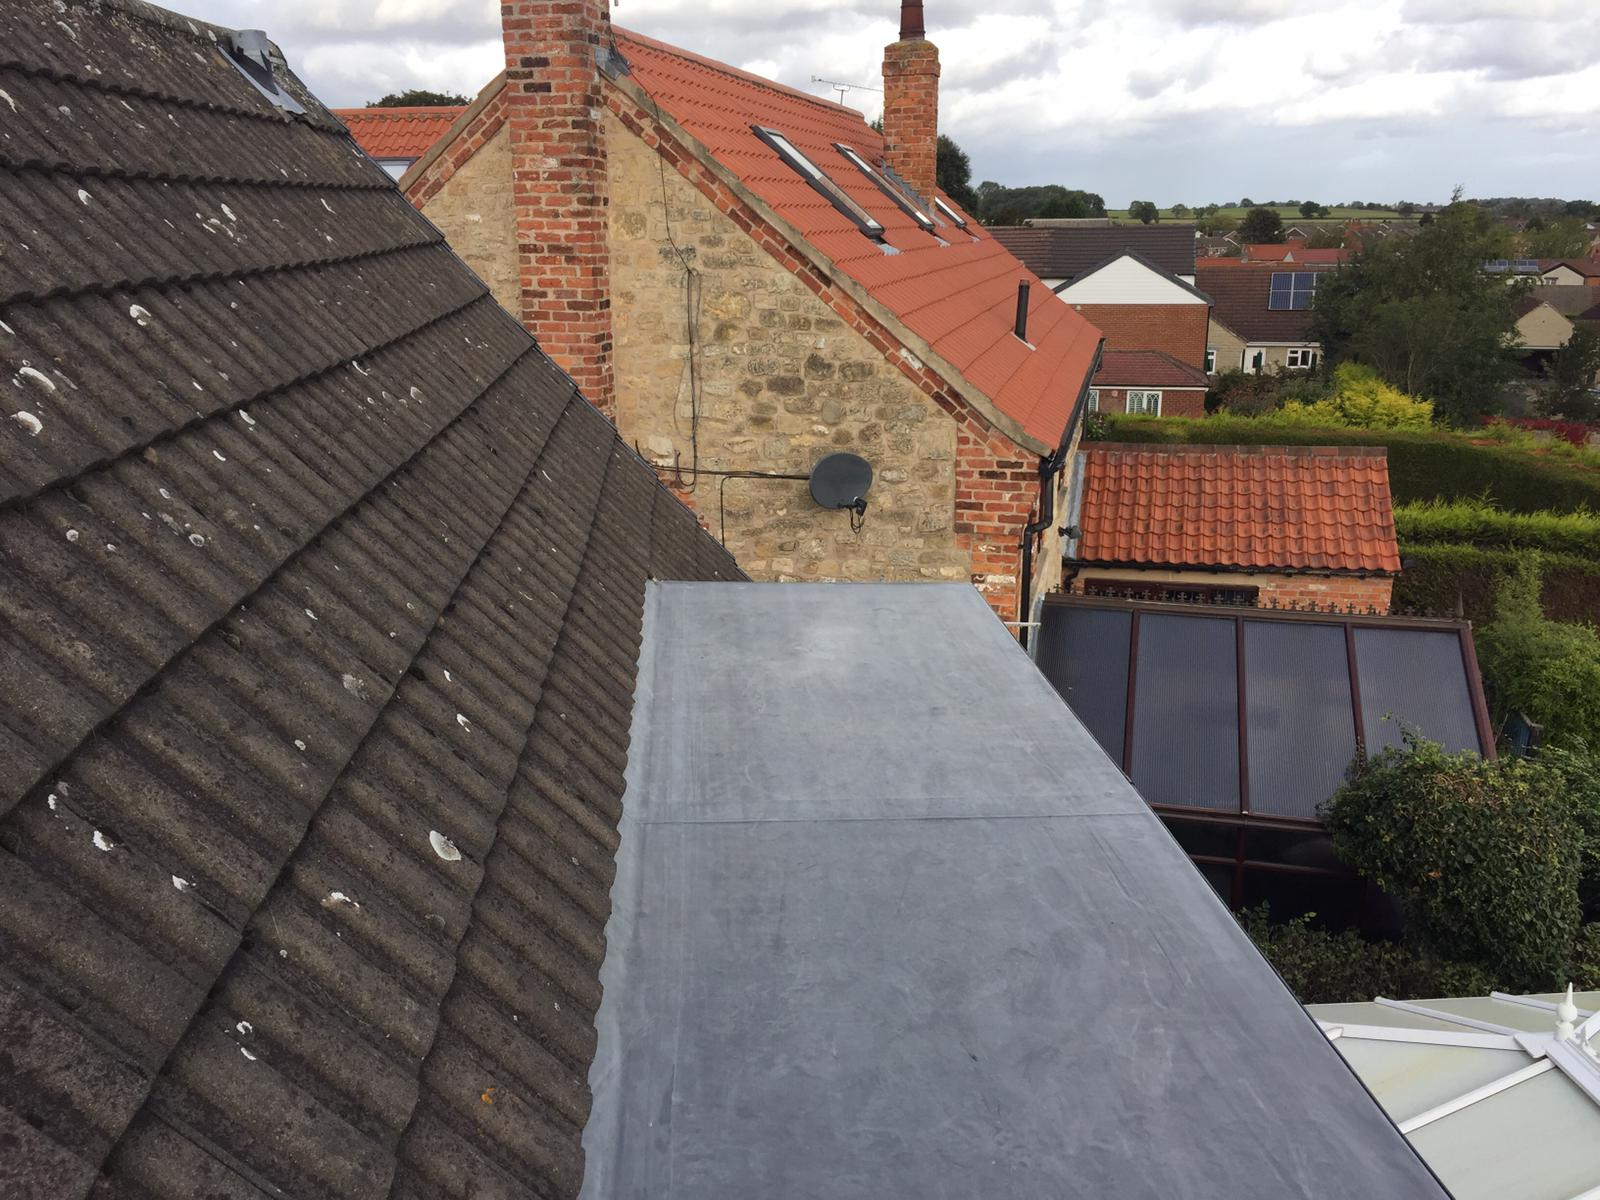 Flat Roofing Sheffield And Rotherham Domestic Roofing Specialists